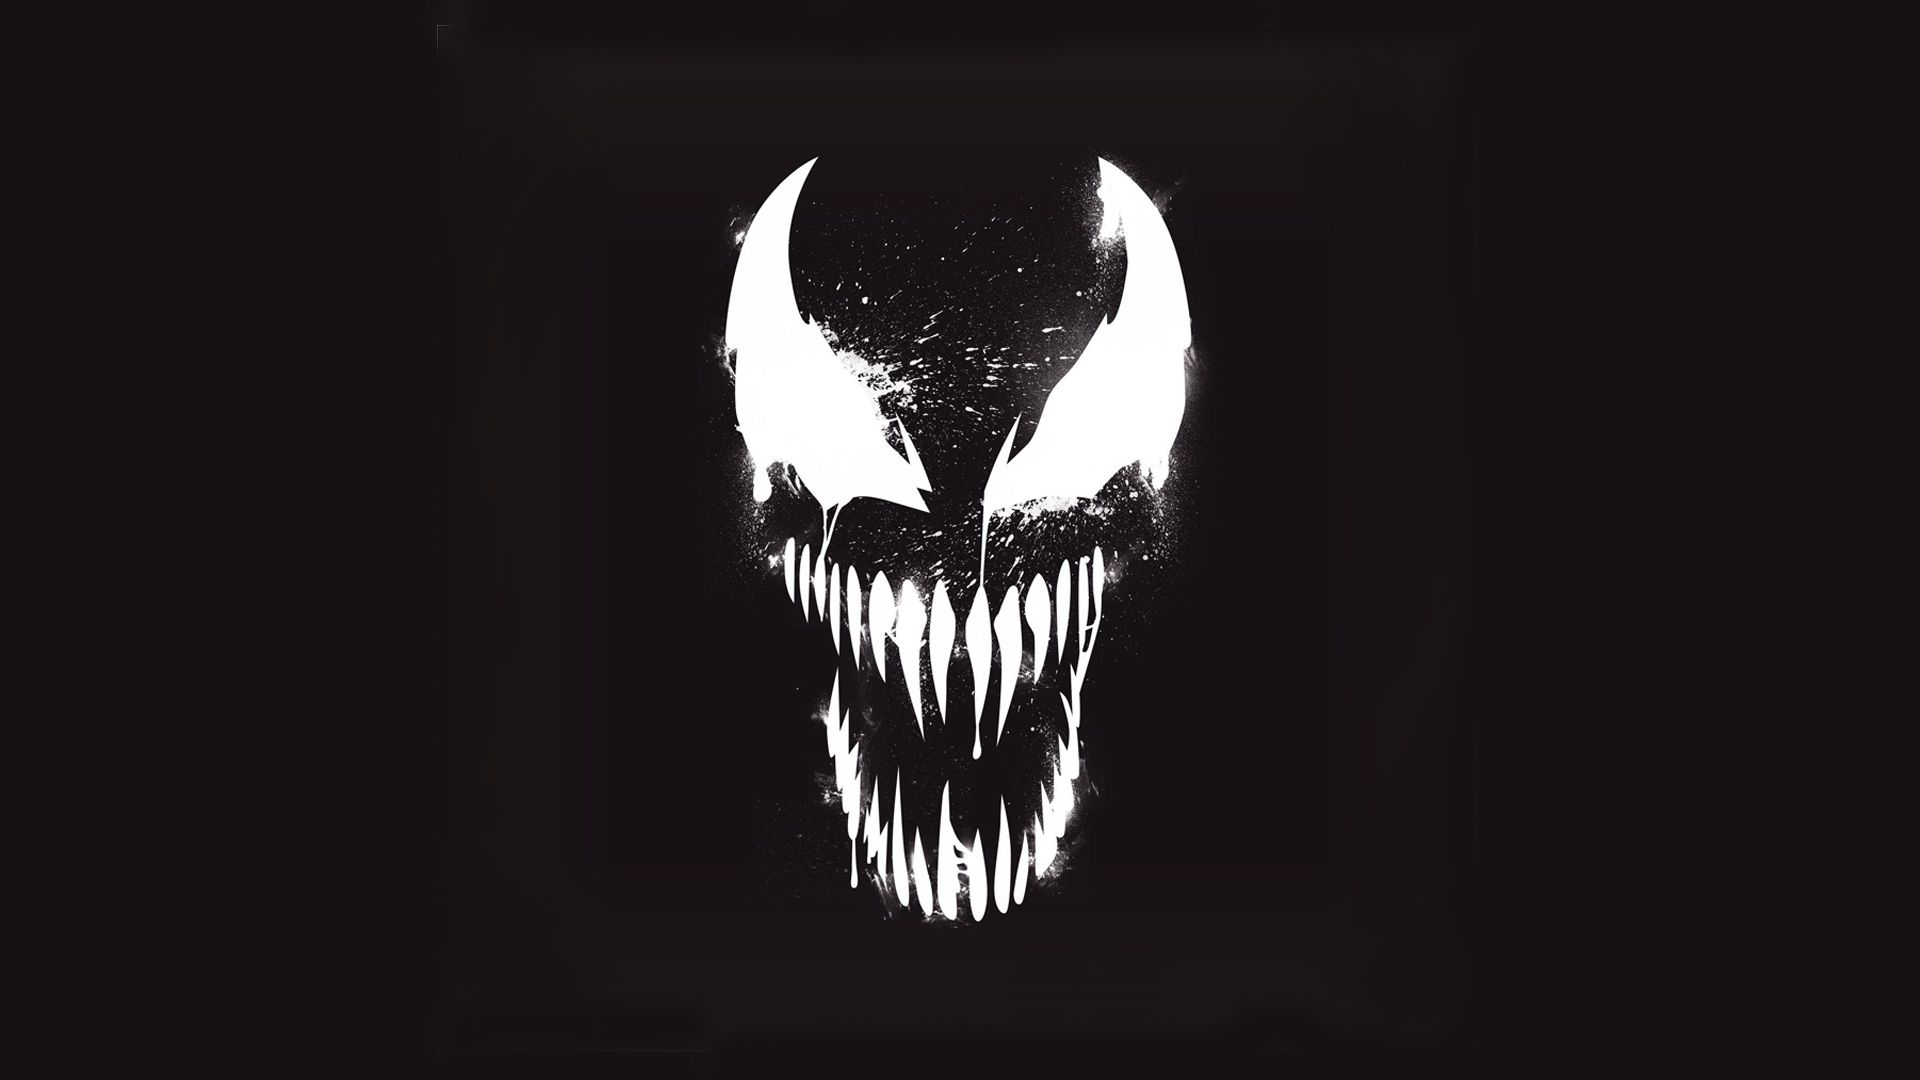 Venom Hd Wallpapers Top Free Venom Hd Backgrounds Wallpaperaccess